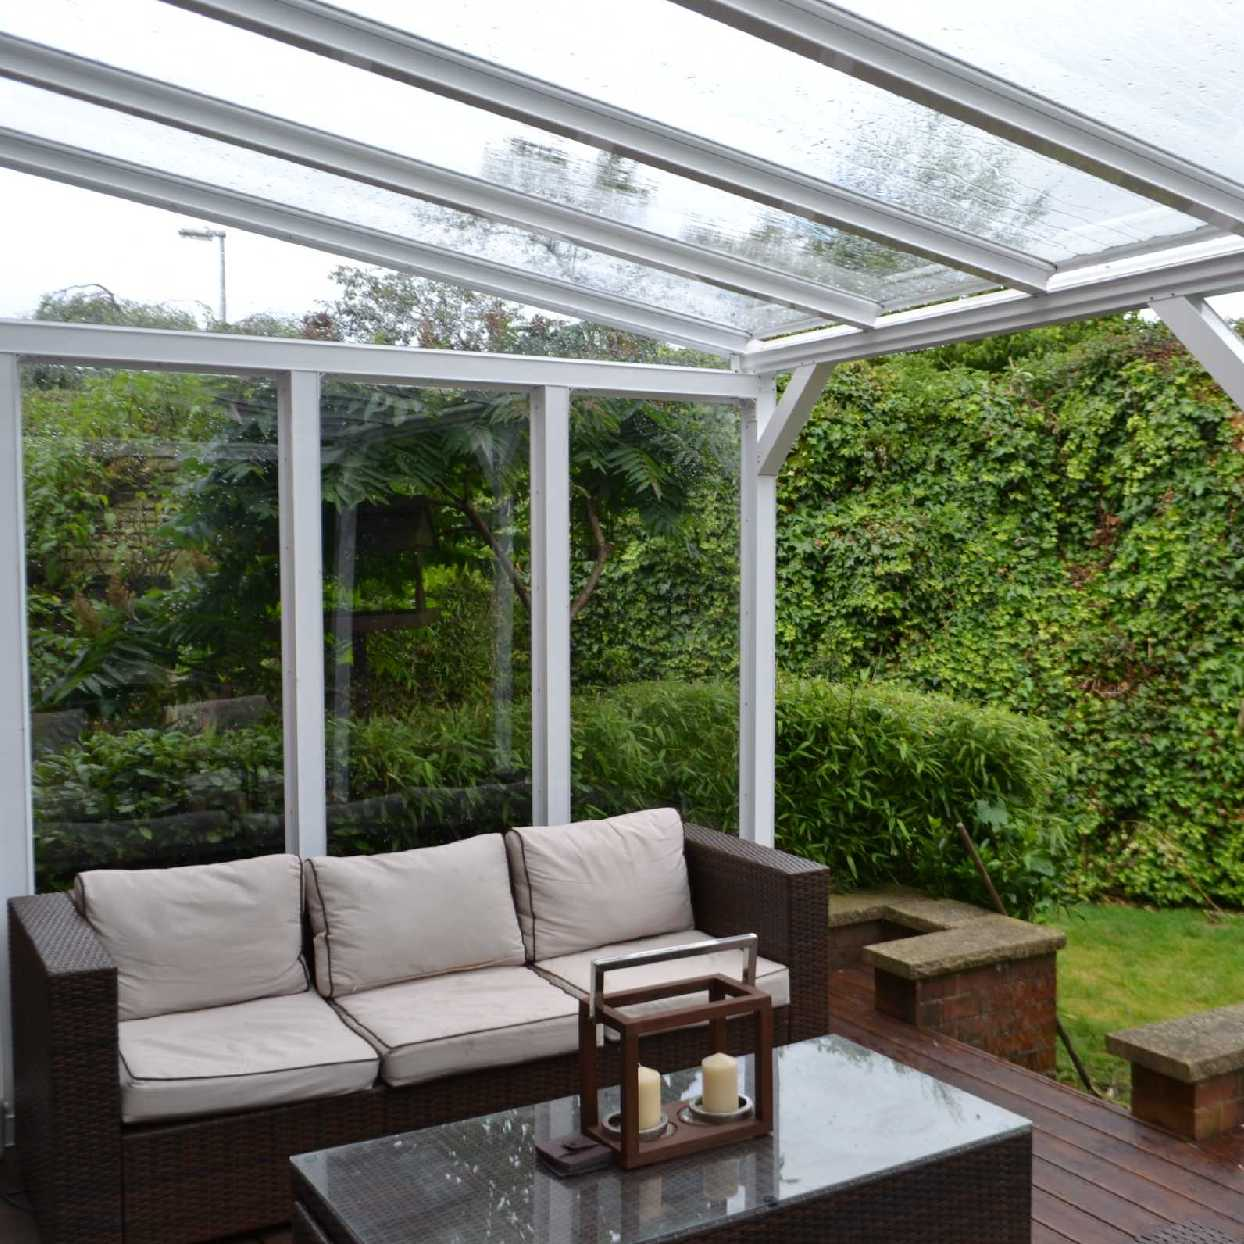 Great selection of Omega Smart White Lean-To Canopy with 16mm Polycarbonate Glazing - 8.4m (W) x 1.5m (P), (4) Supporting Posts